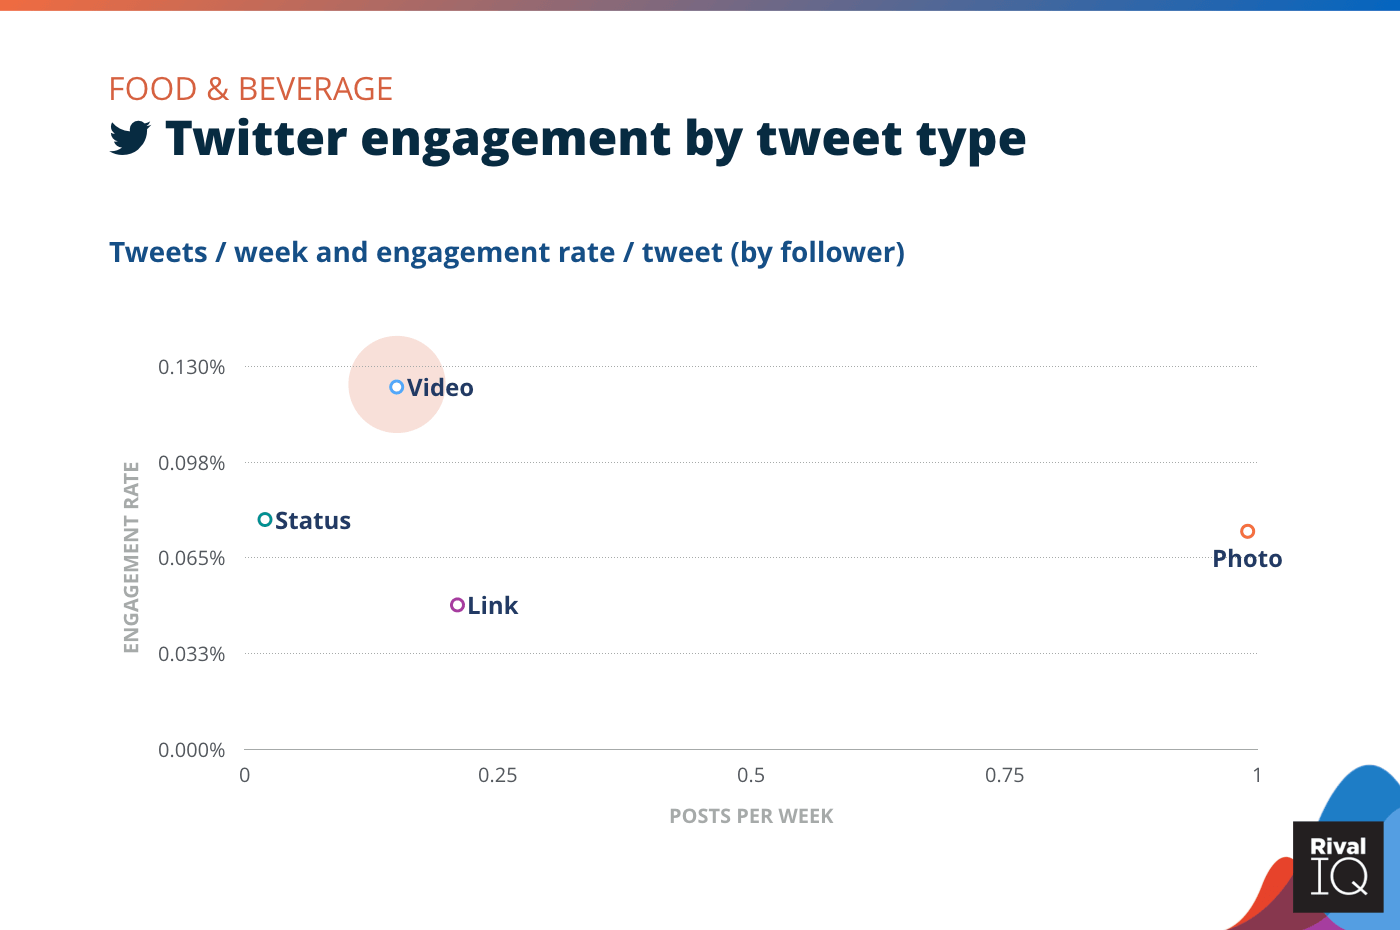 Chart of Twitter posts per week and engagement rate by tweet type, Food & Beverage